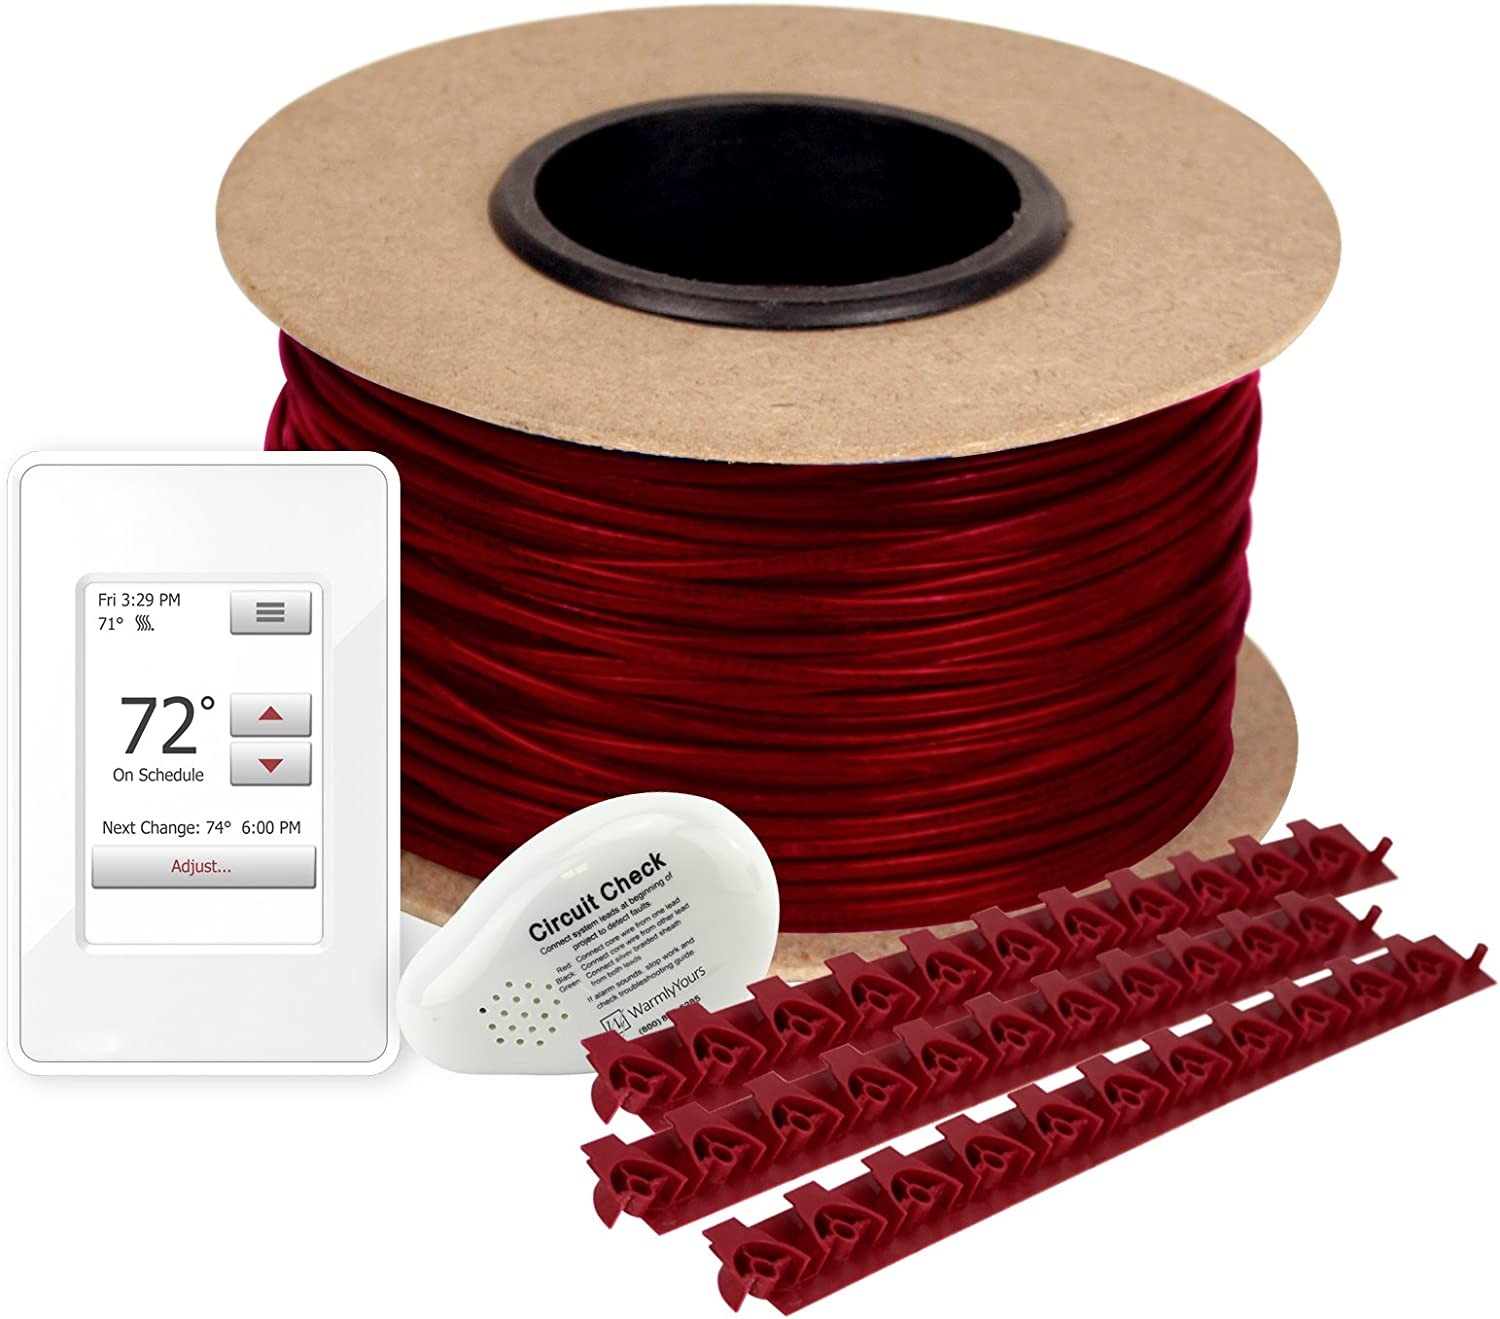 WarmlyYours Shipping included TCT240-KIT-OT-355 Tempzone Electric Heating Floor Max 66% OFF Ca